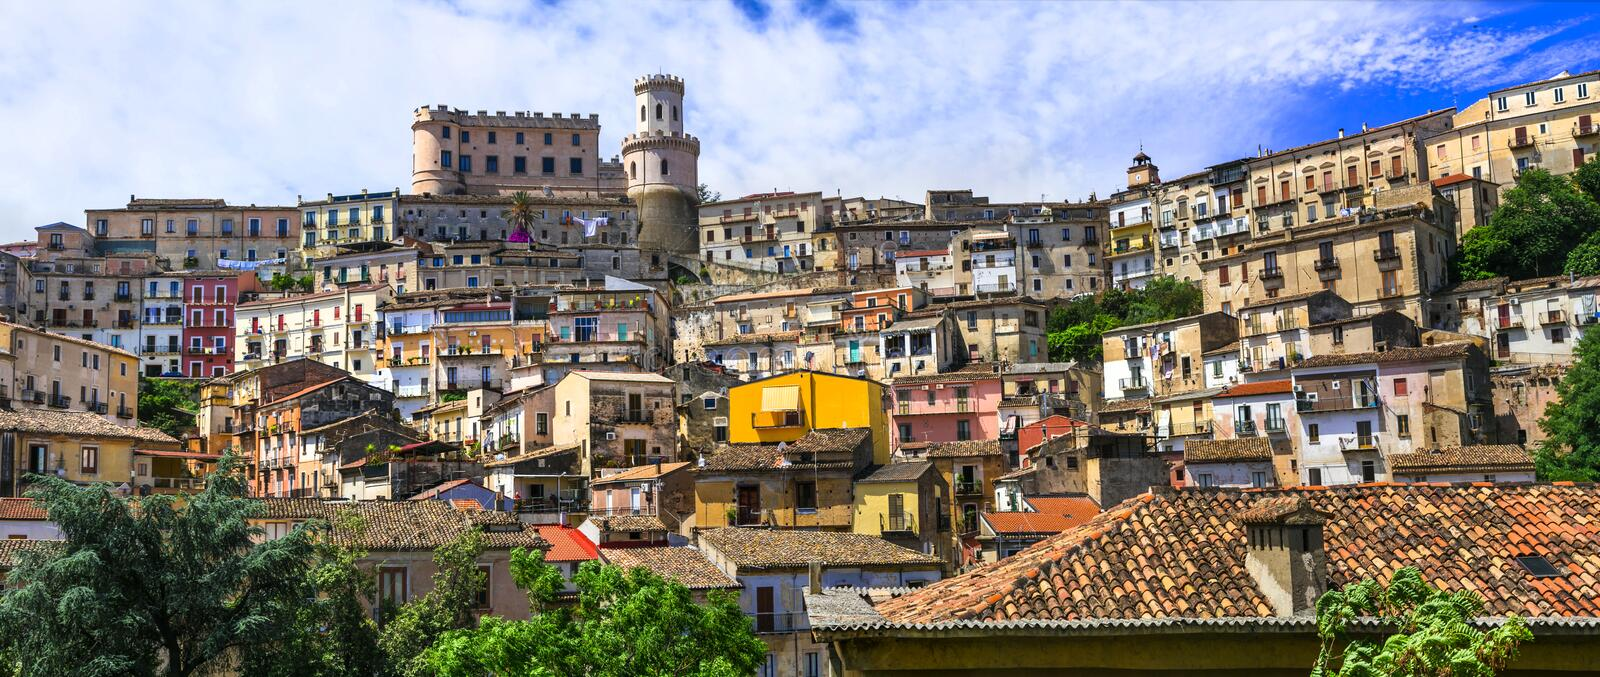 Medieval borgo village Corigliano calabro. Travel in Italy, Calabria. Impressive Corigliano Calabro village,view with traditional houses and old castle,Calabria royalty free stock images